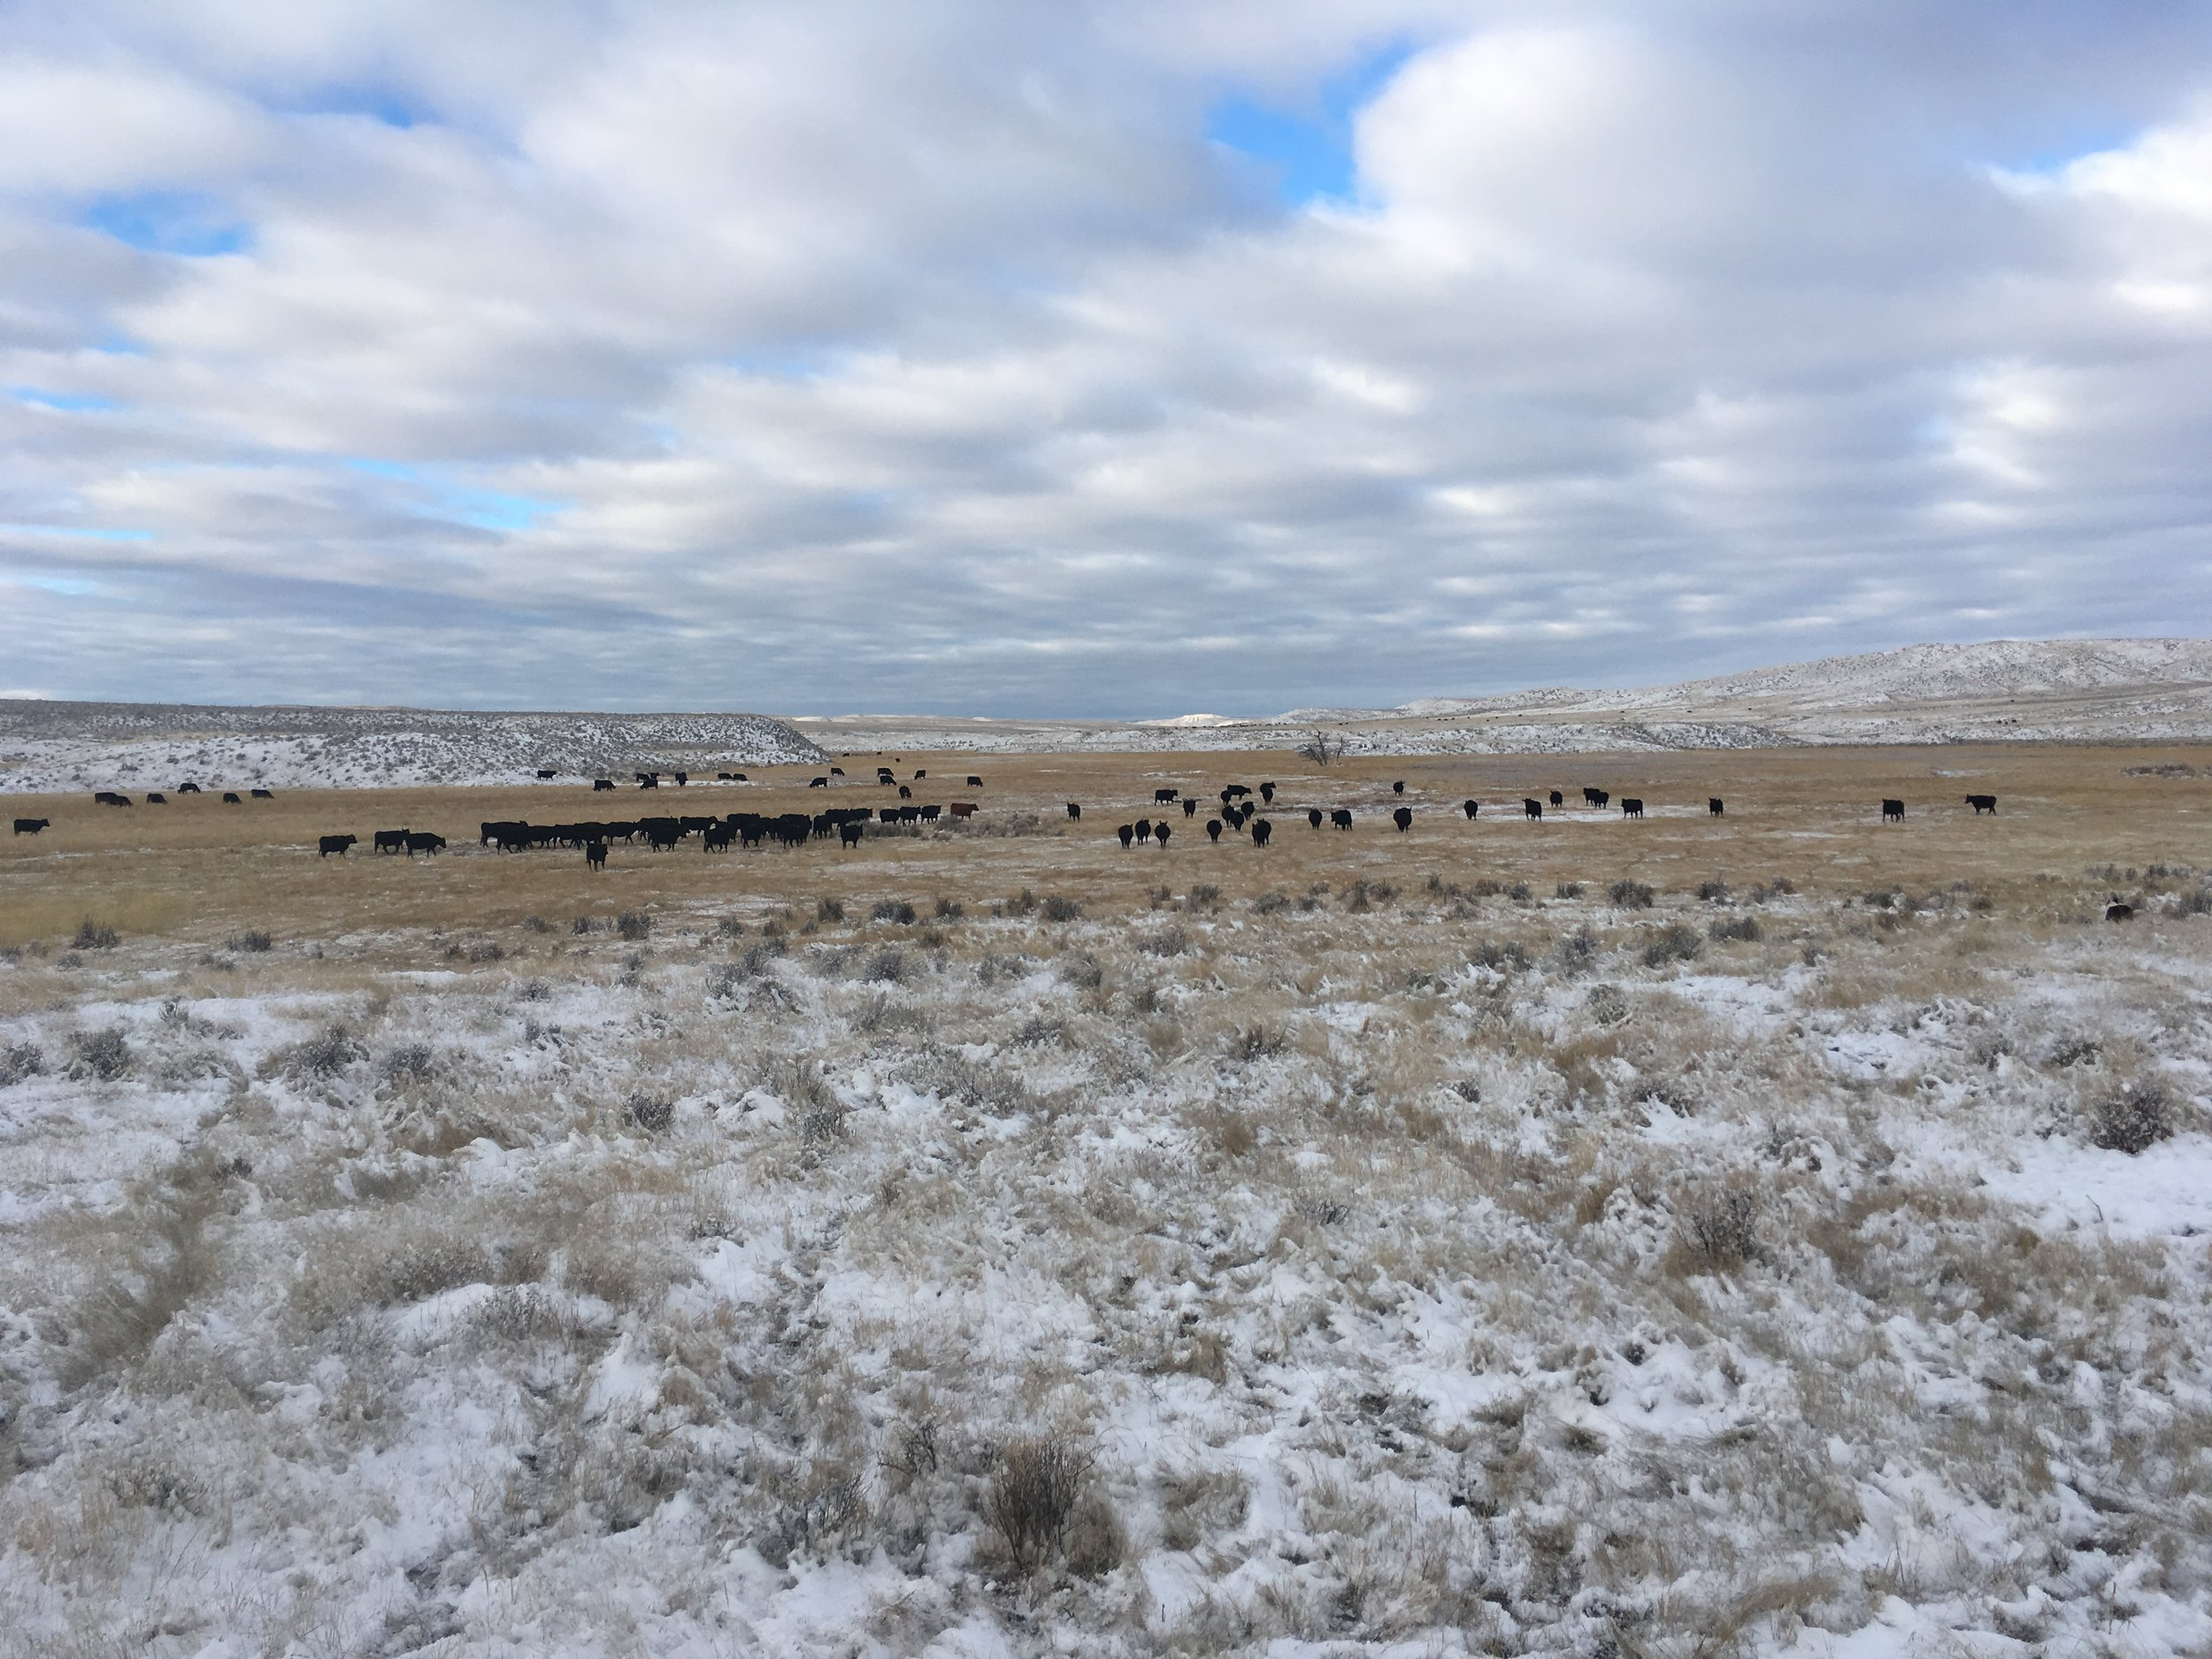 Gathering them to go out to the badlands Wednesday morning.